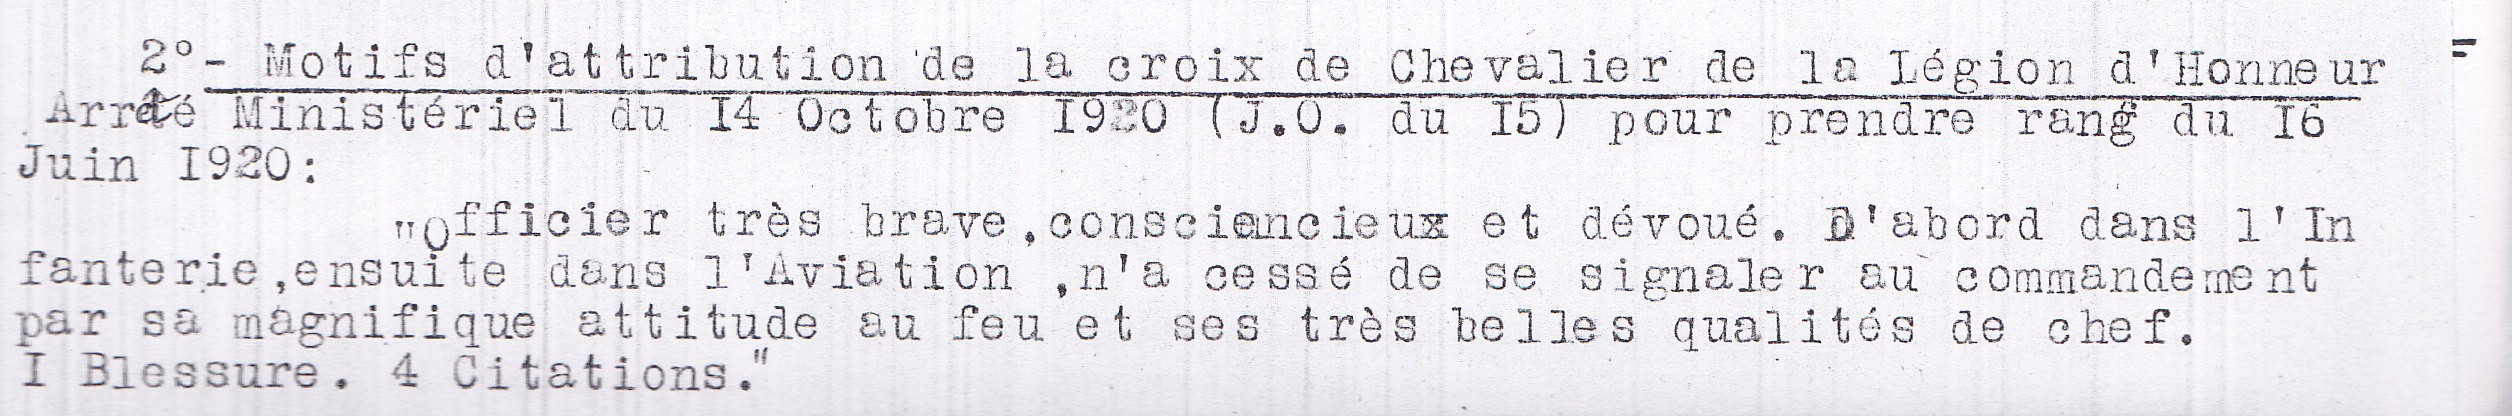 Citation5-Lobbedey-DocsLégD'H_0022